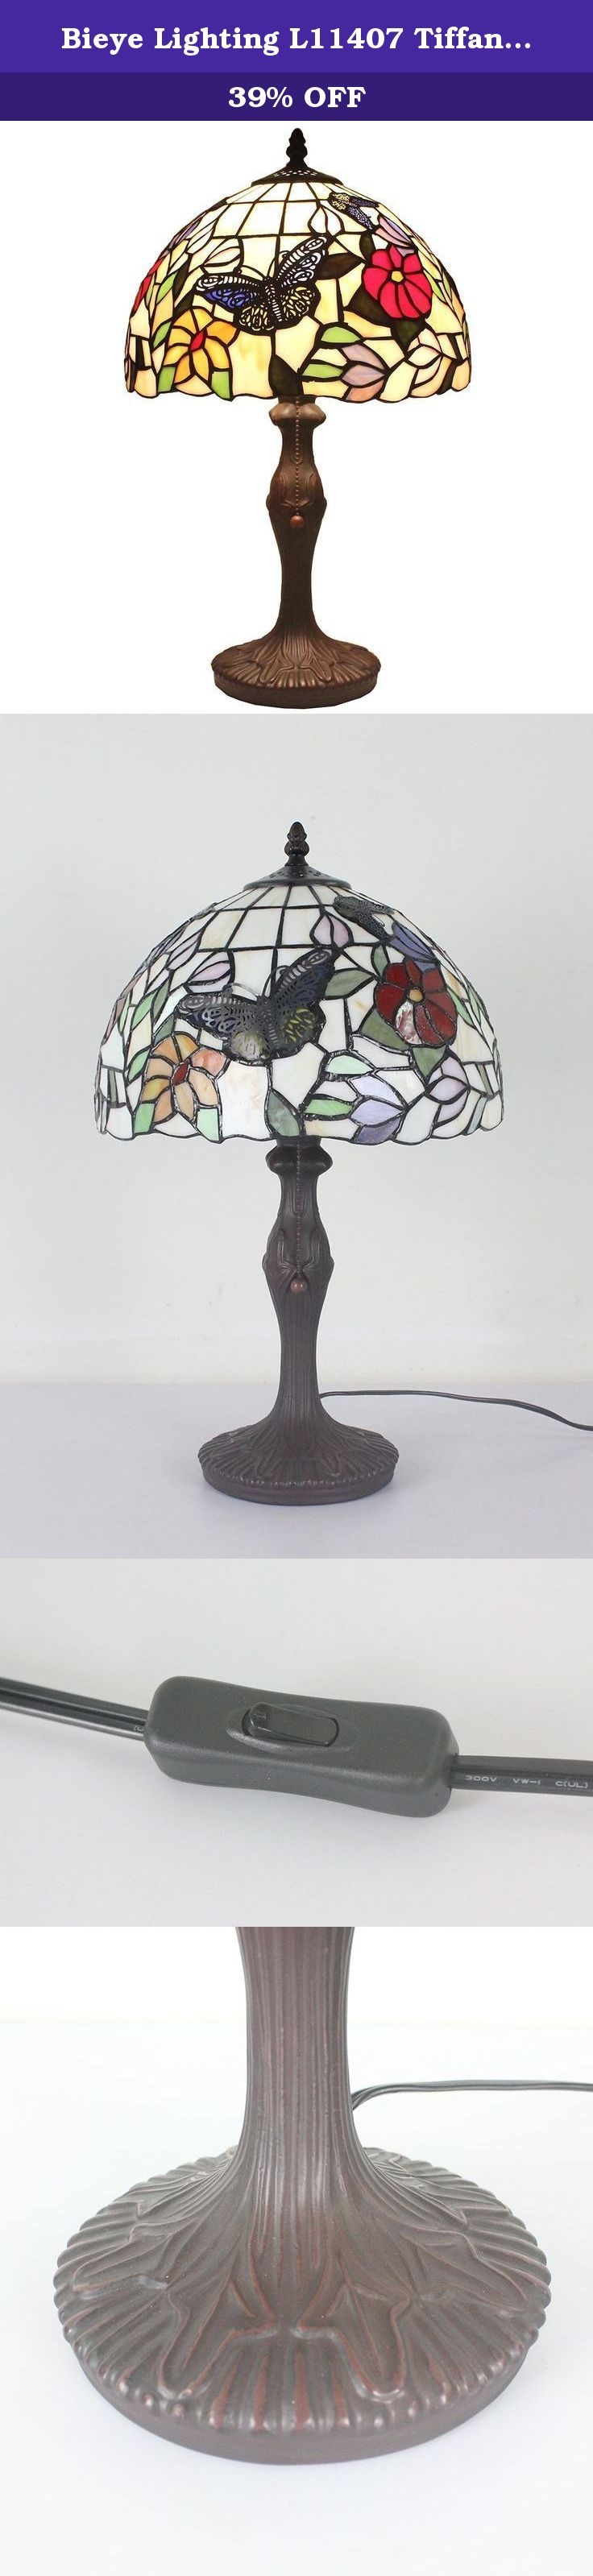 Bieye lighting l11407 tiffany style stained glass butterfly table bieye lighting tiffany style stained glass butterfly table lamp with upgraded aluminum alloy bulb holder and zinc lamp base 12 inches handmade lamp shade geotapseo Choice Image